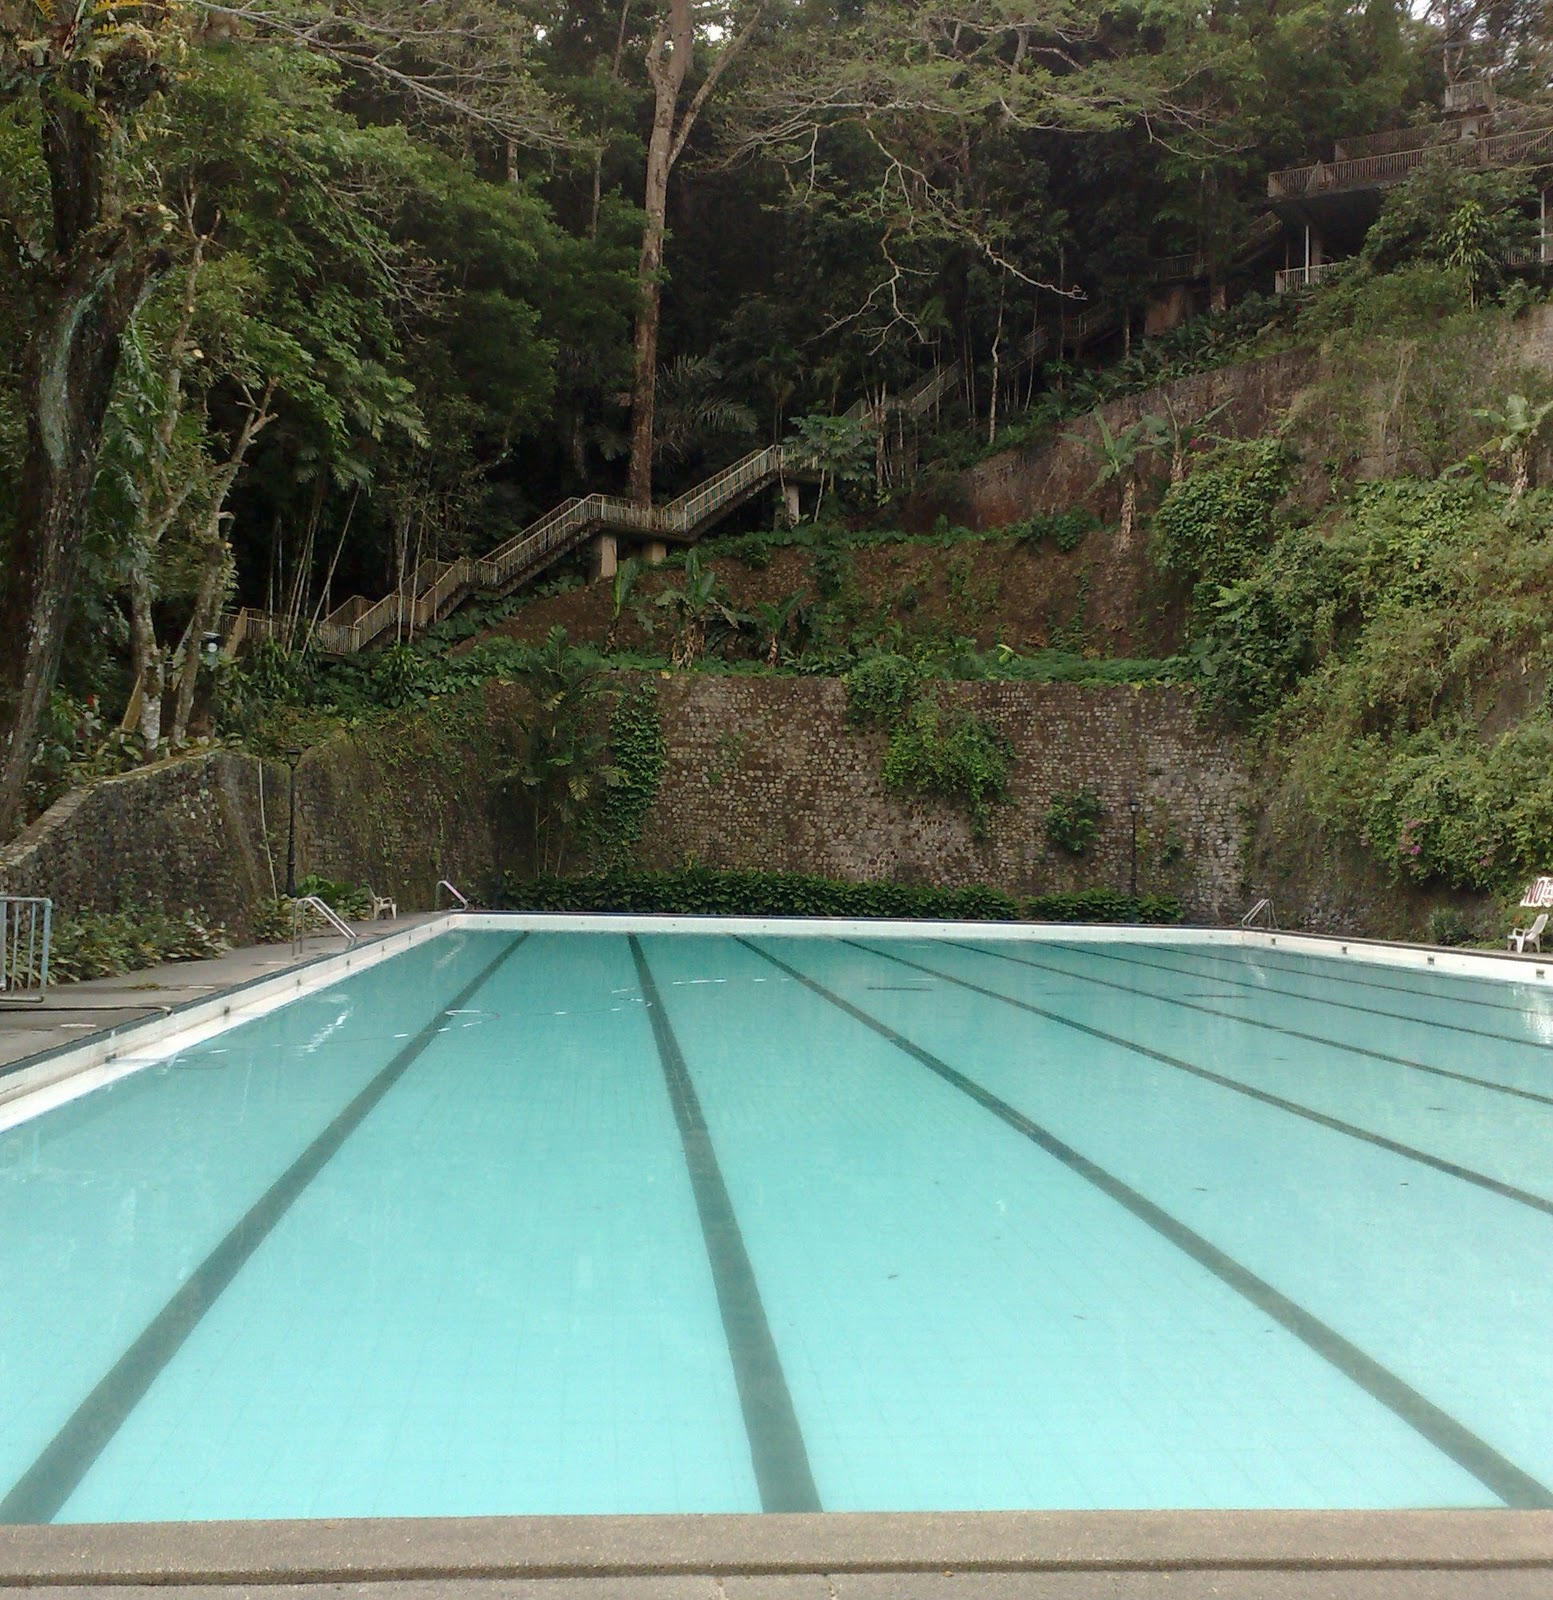 Olympic Swimming Pool In Person: Pook Ni Mariang Makiling: Rates, Charges And Contact